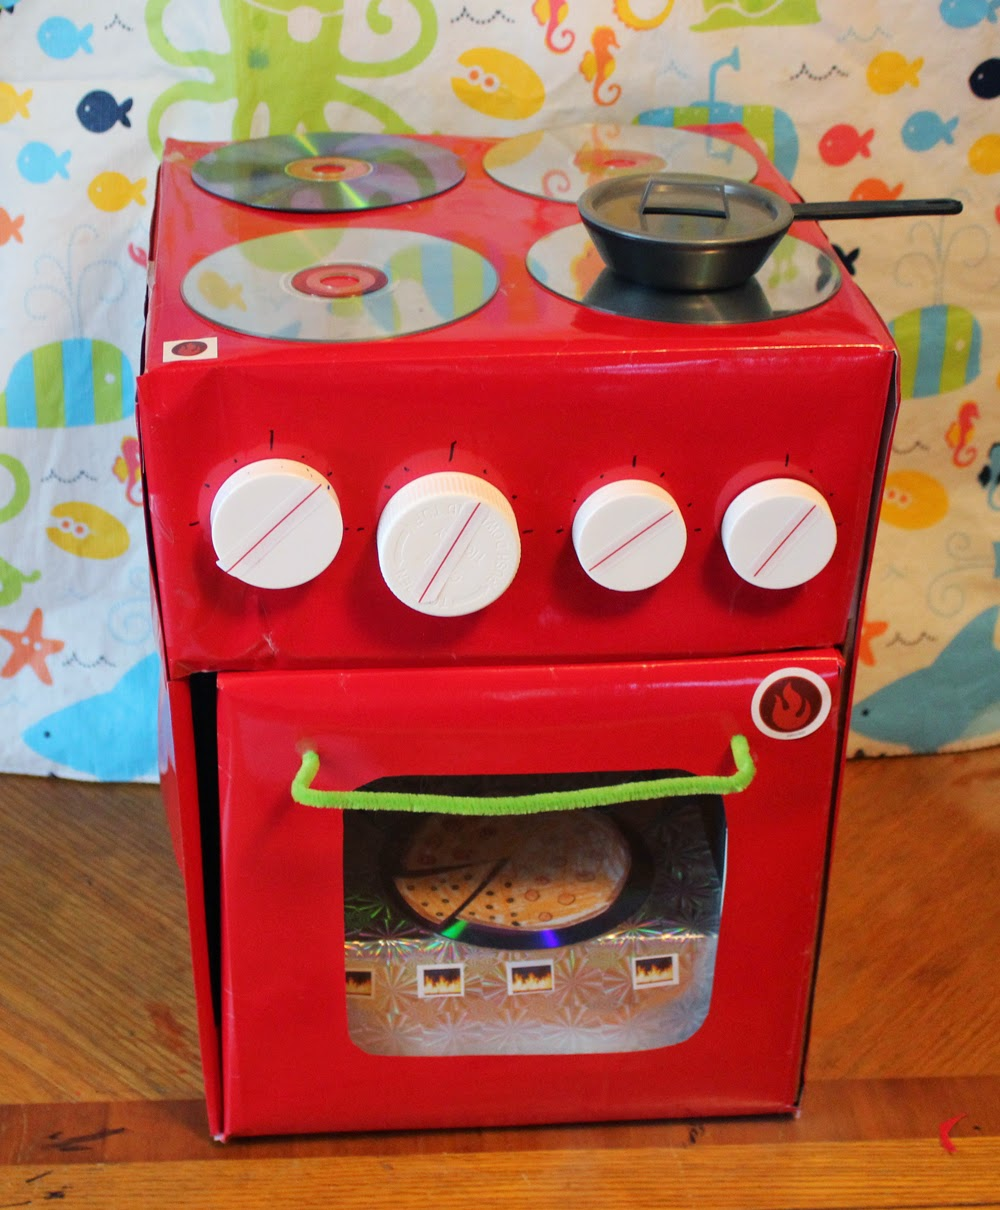 I made for you: Cardboard kitchen appliance, AKA recycled toy.